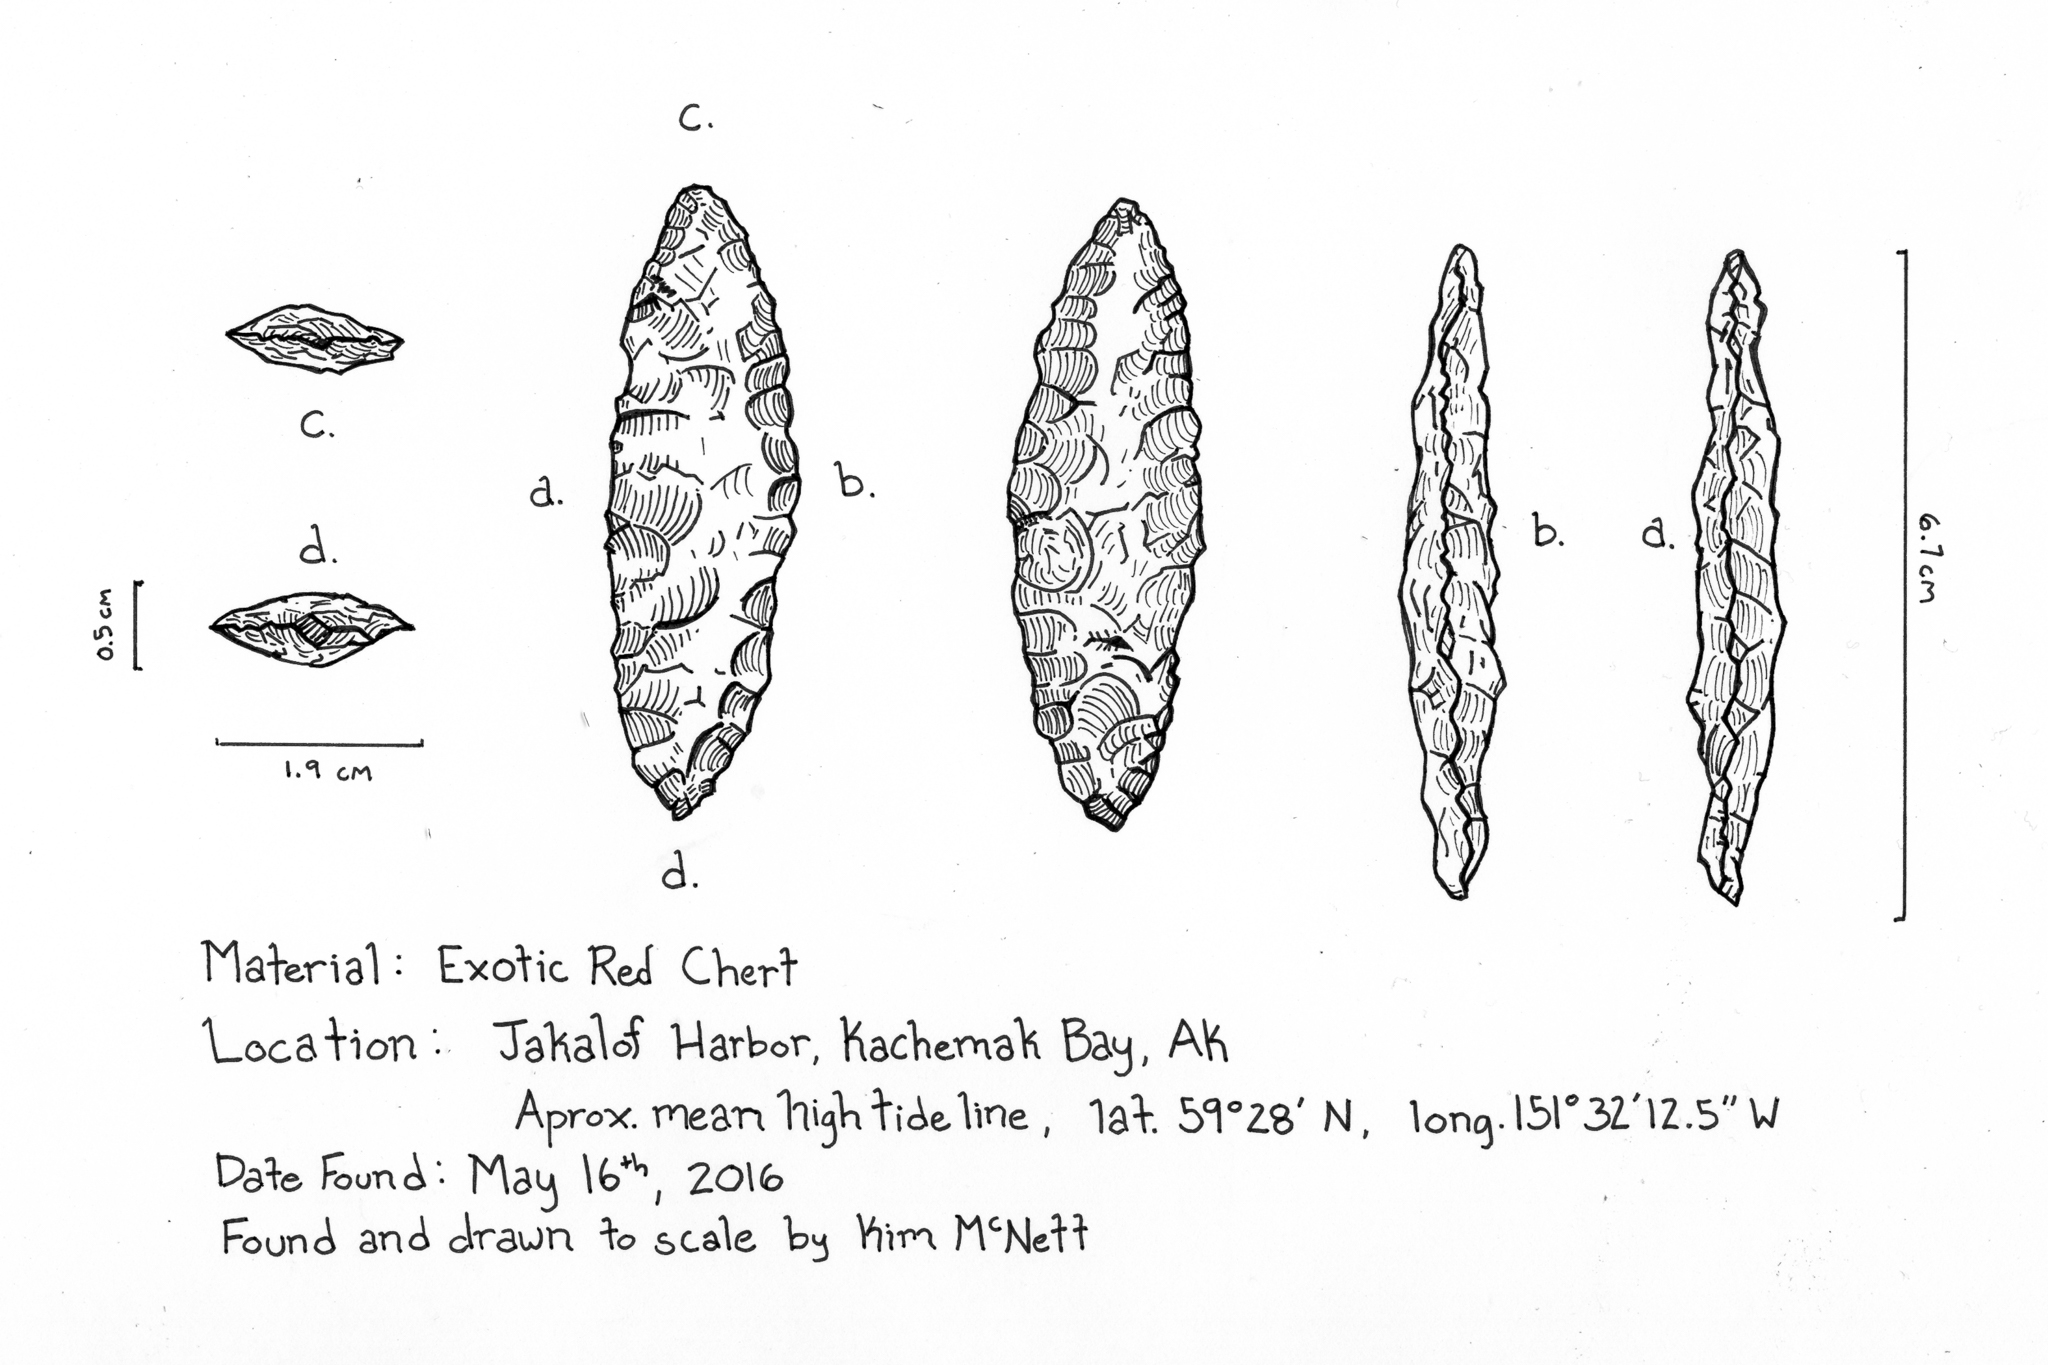 Chert artifact drawing